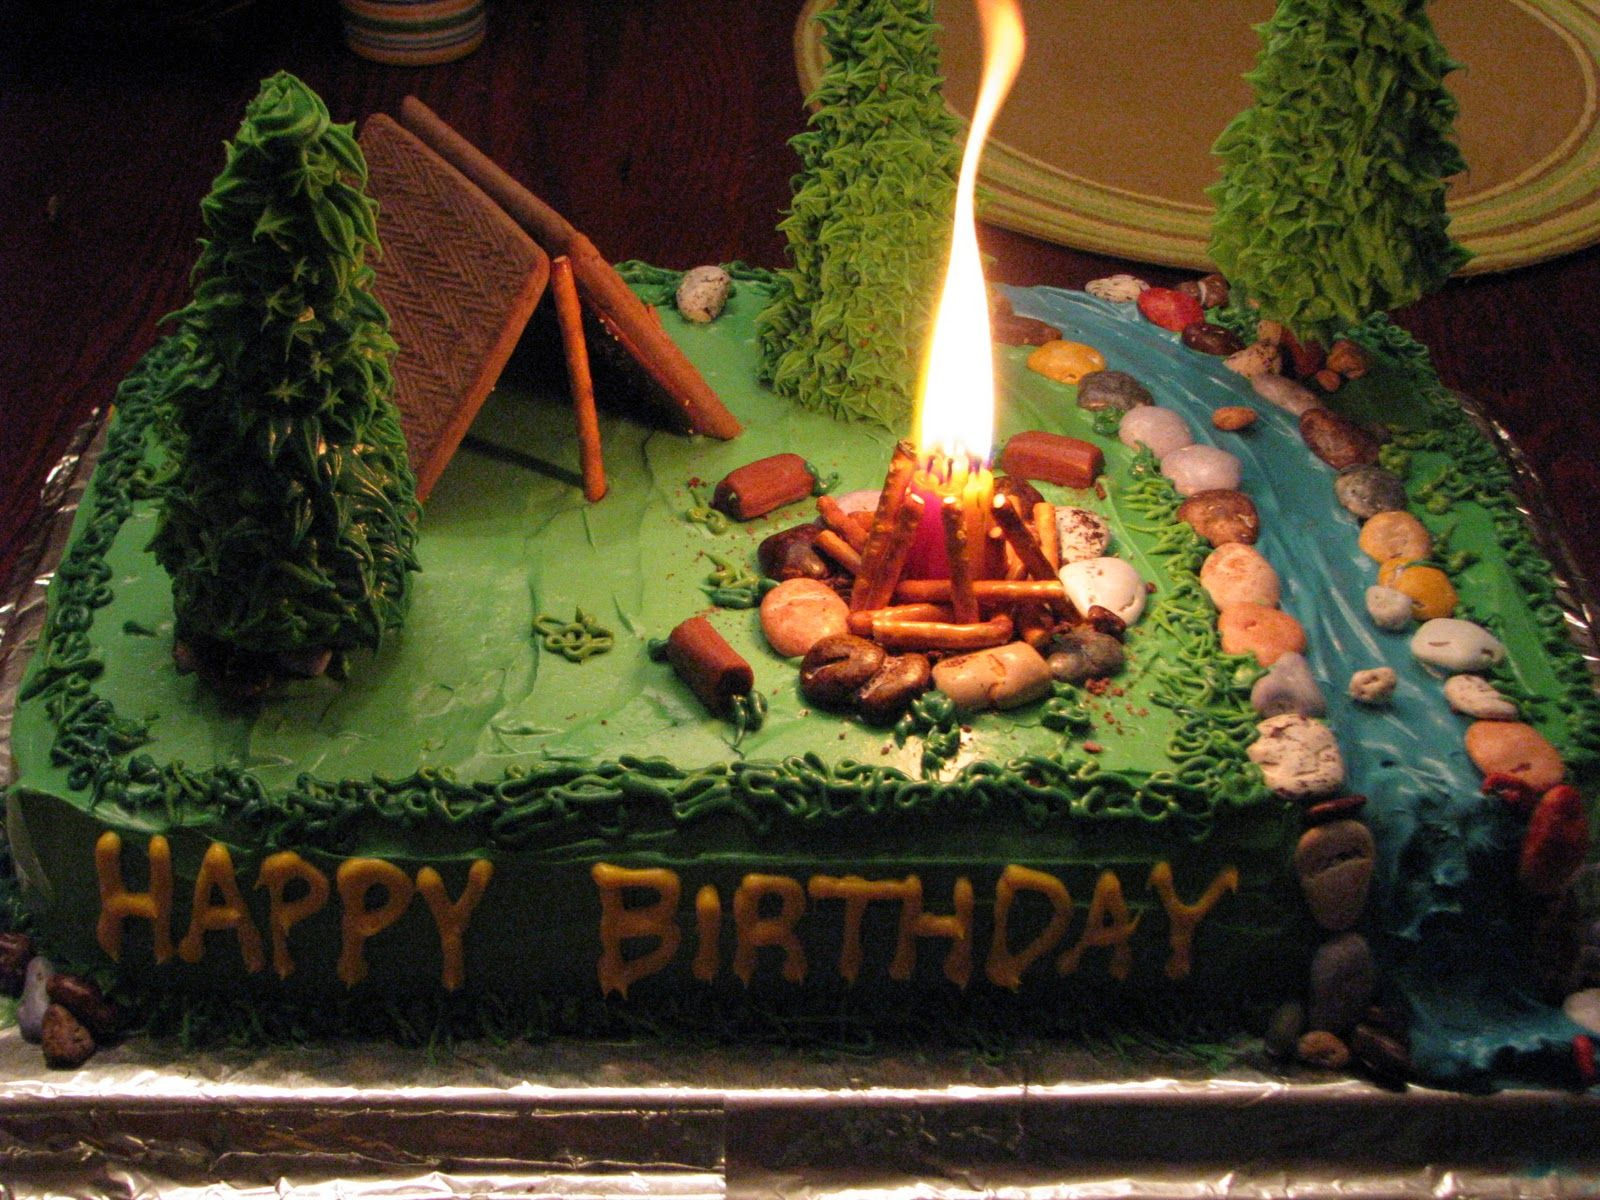 Camping cake so cool wefollowpics party time for Campsites with fishing